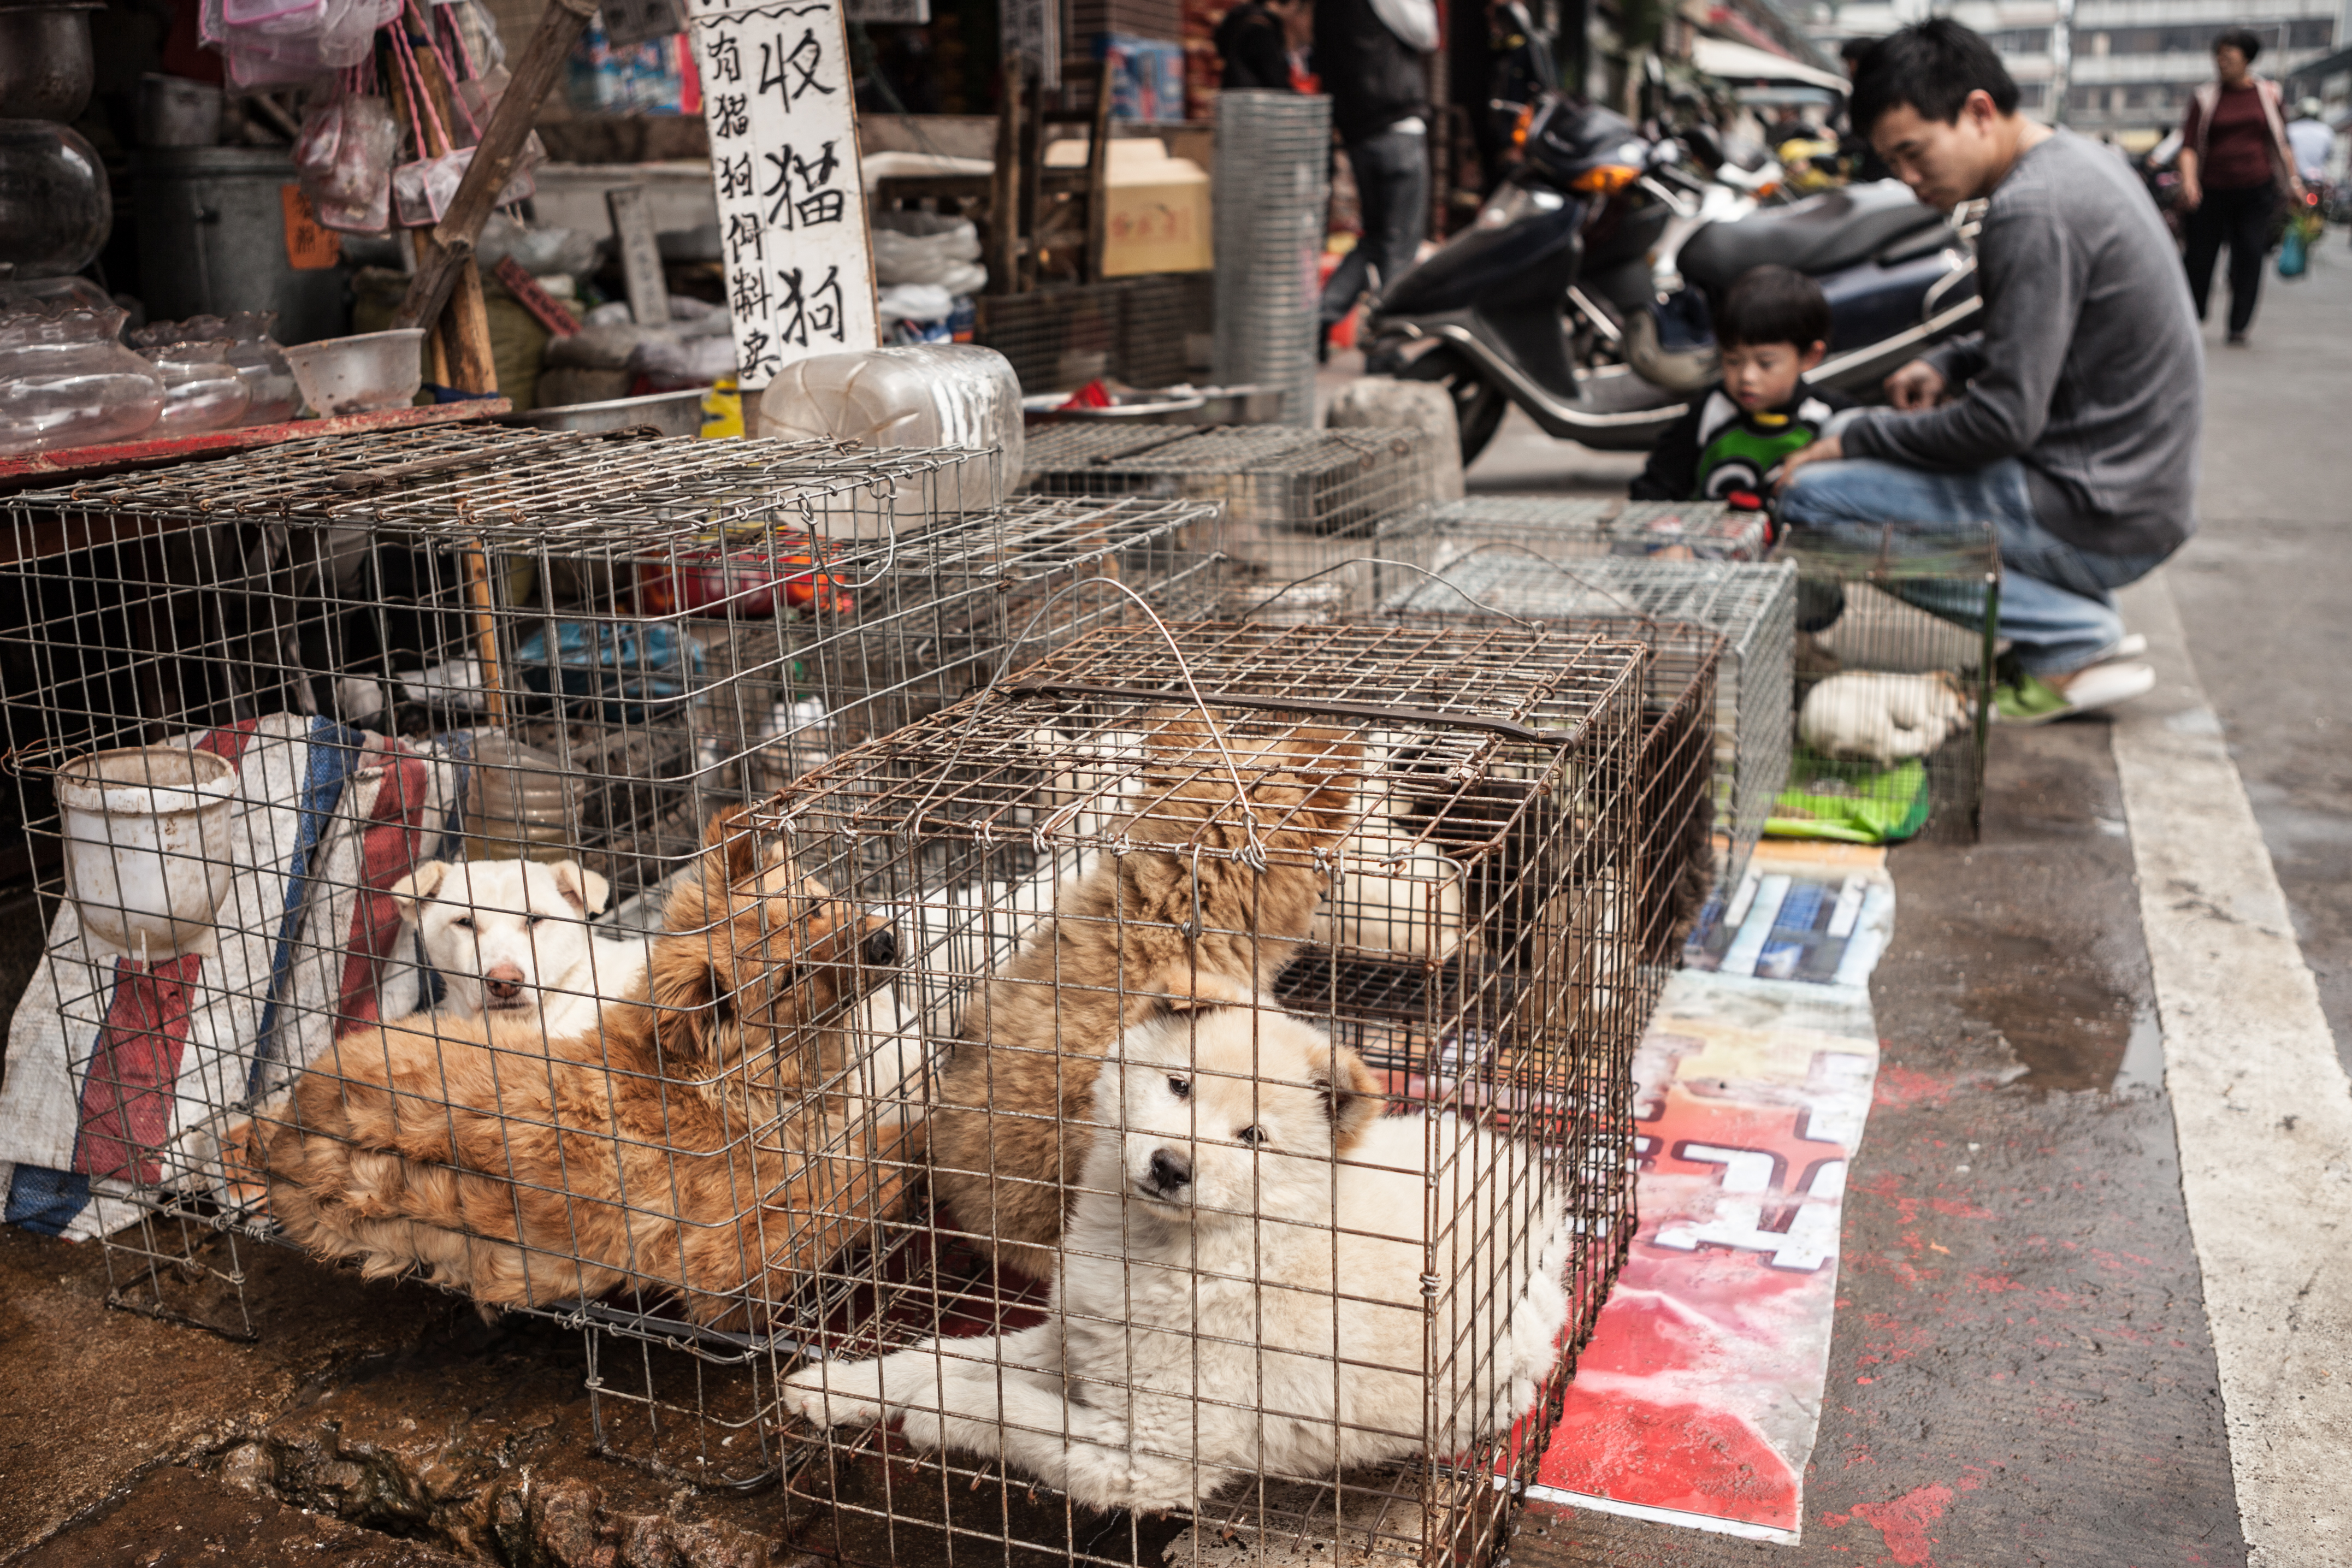 Did HSUS Let Dogs Suffer in China? - HumaneWatch - photo#28